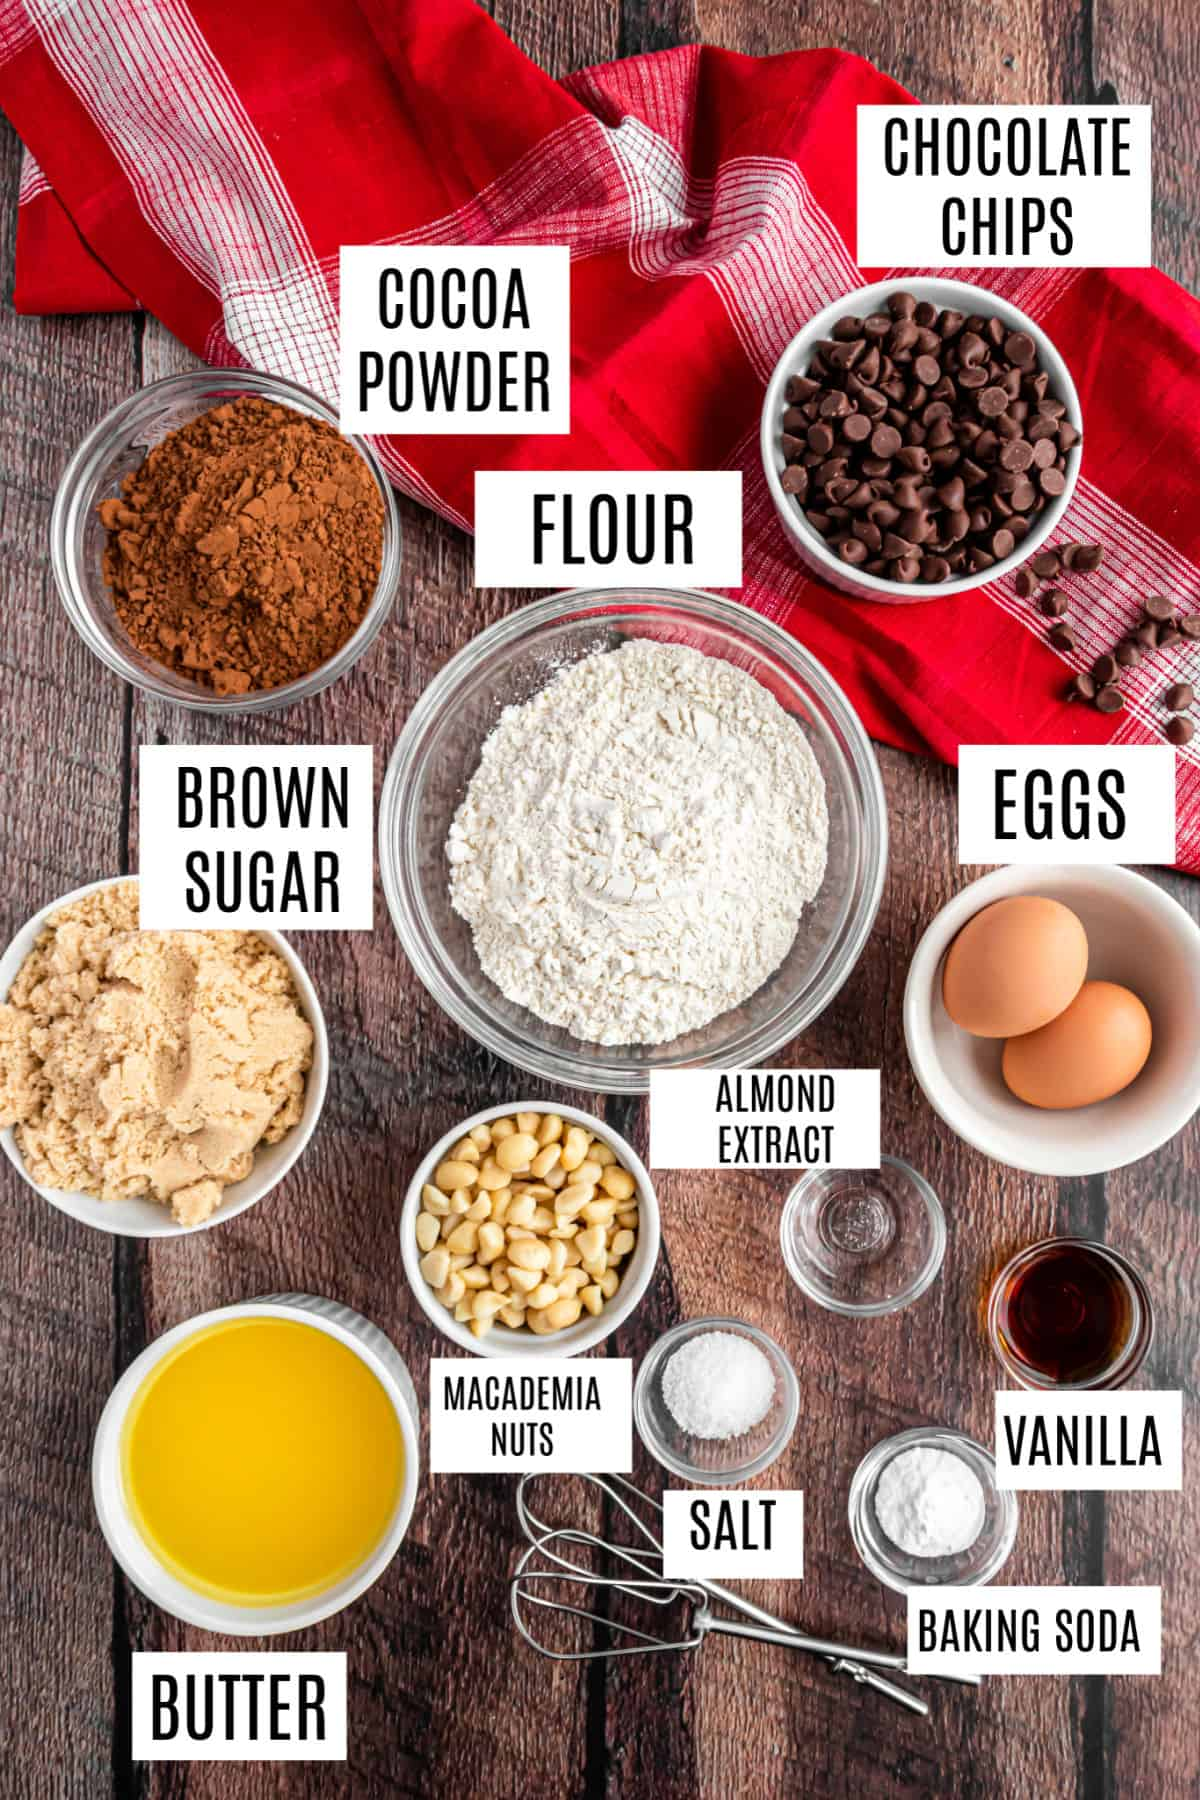 Ingredients for chocolate macadamia nut cookies.